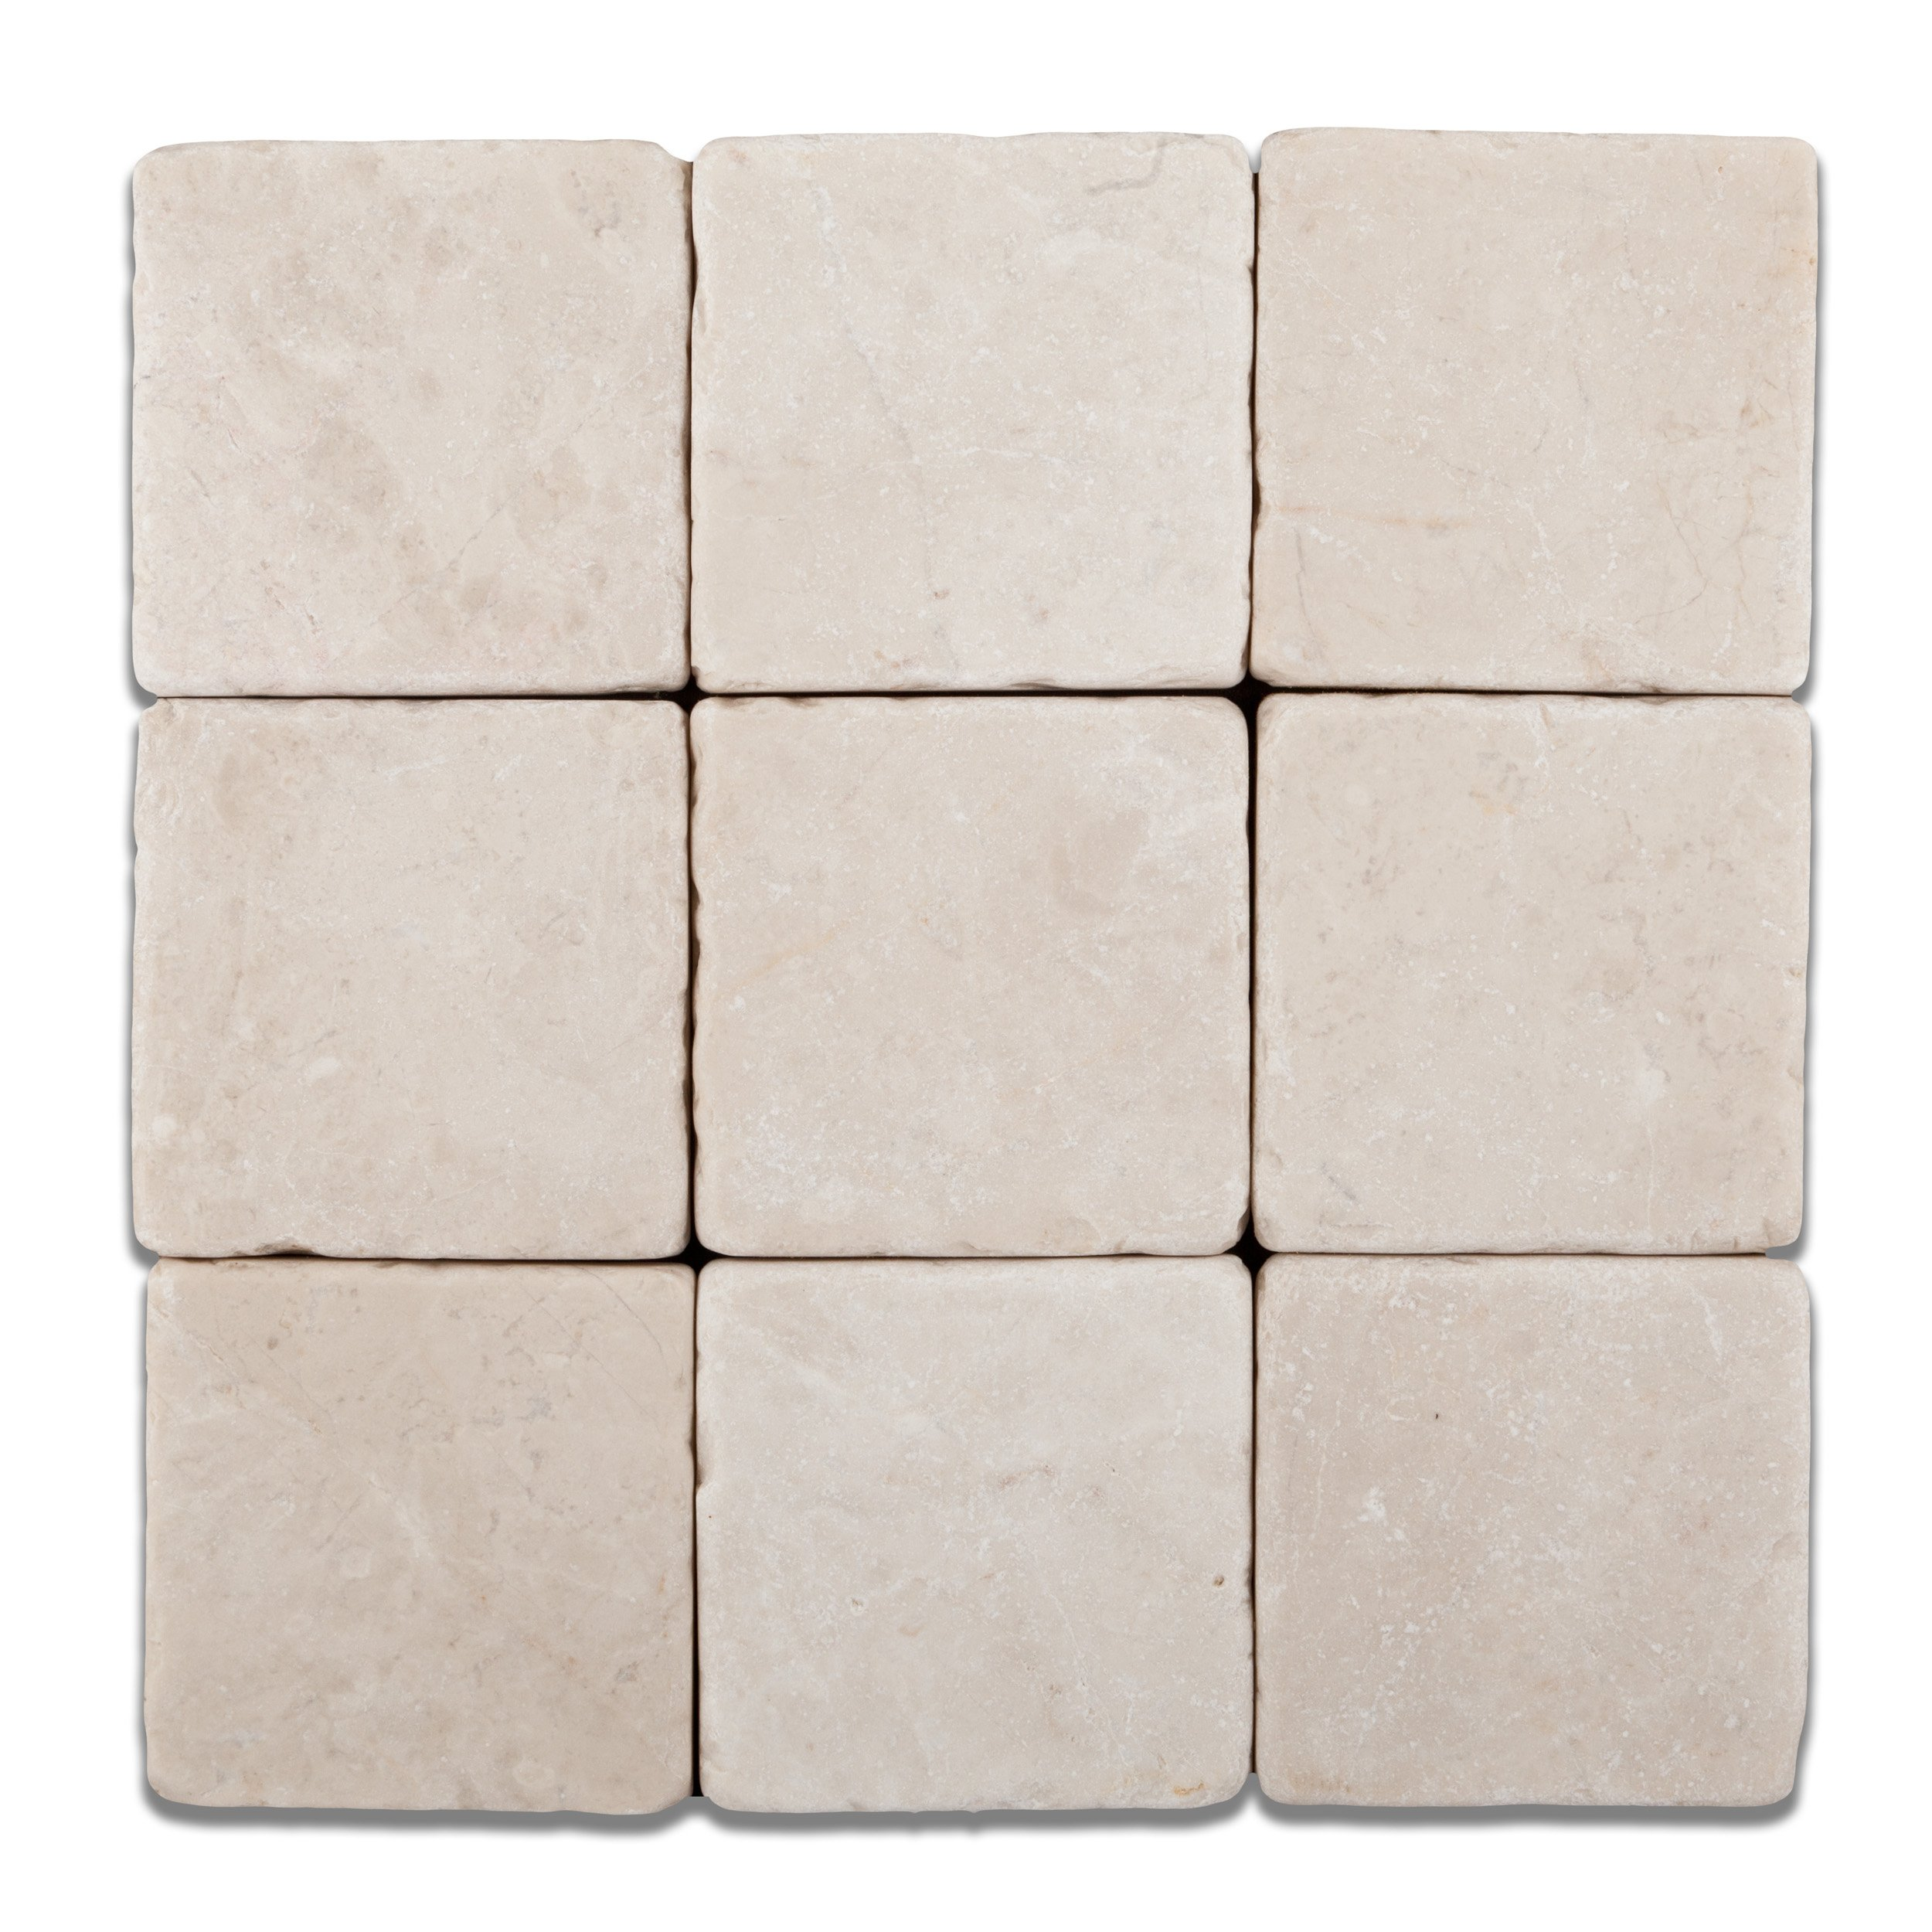 Turkish Crema Marfil Marble 4 X 4 Tumbled Field Tile - Box of 5 sq. ft. by Oracle Tile & Stone